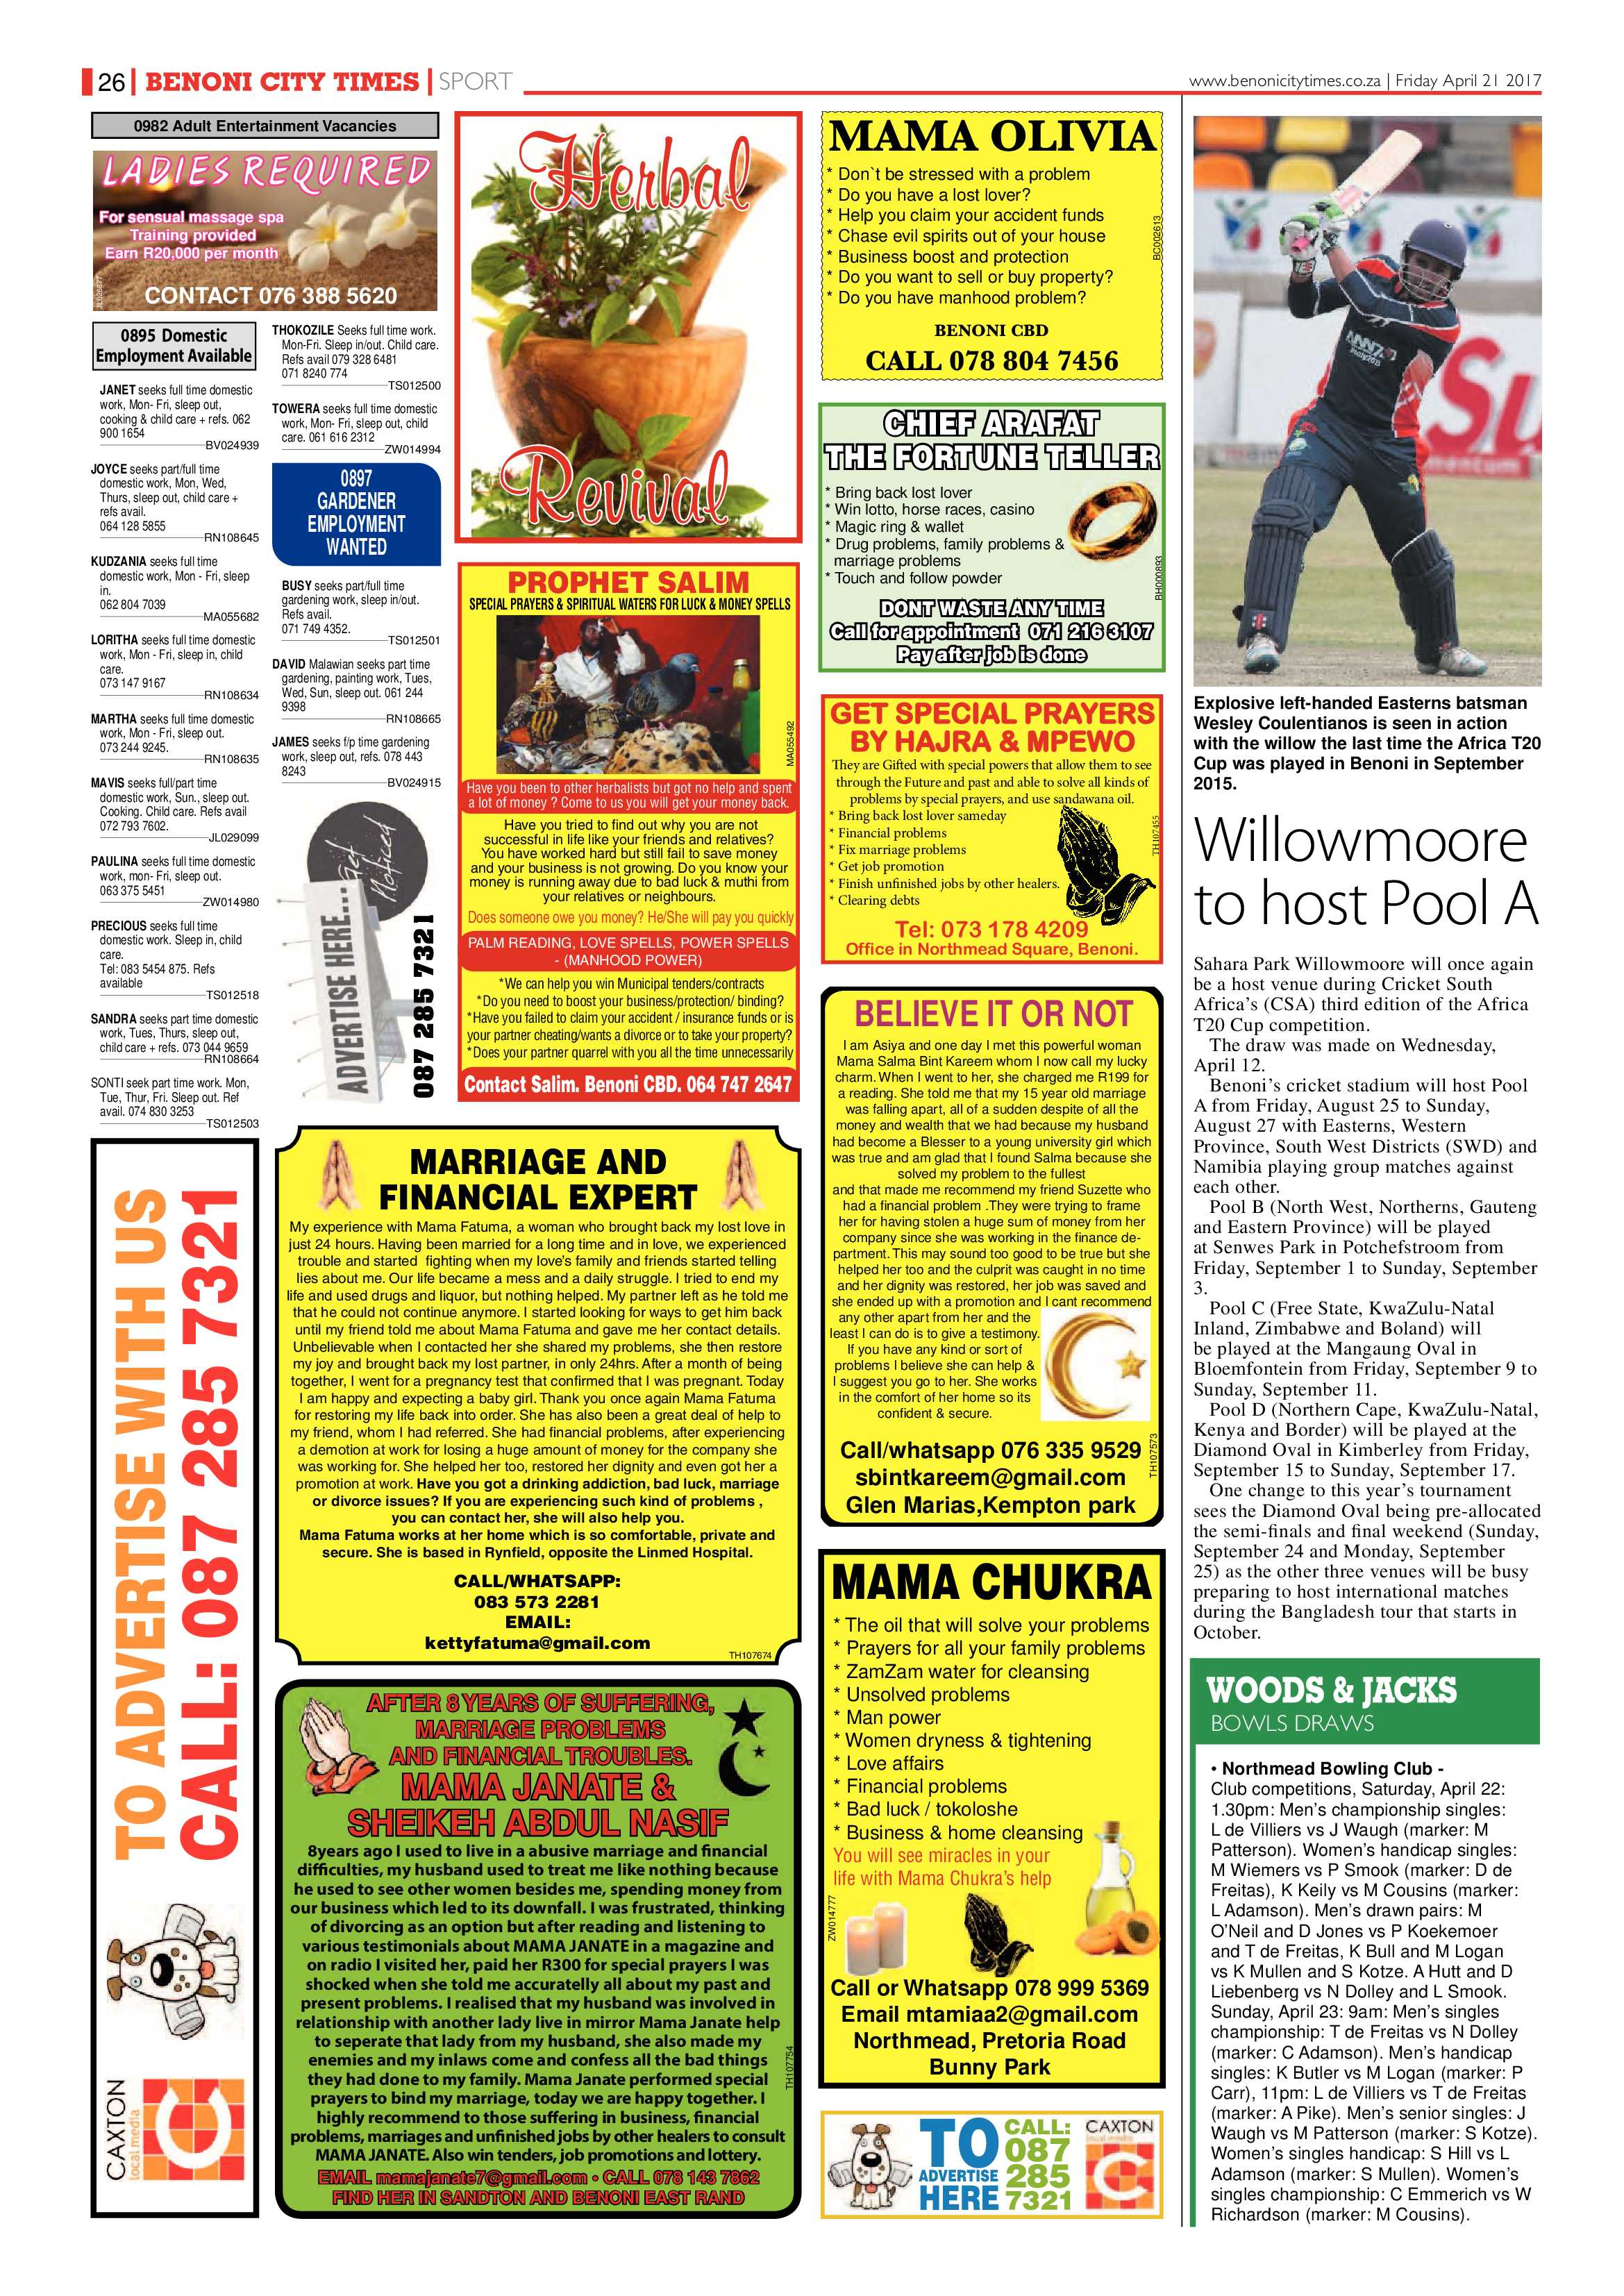 benoni-city-times-20-april-2017-epapers-page-26